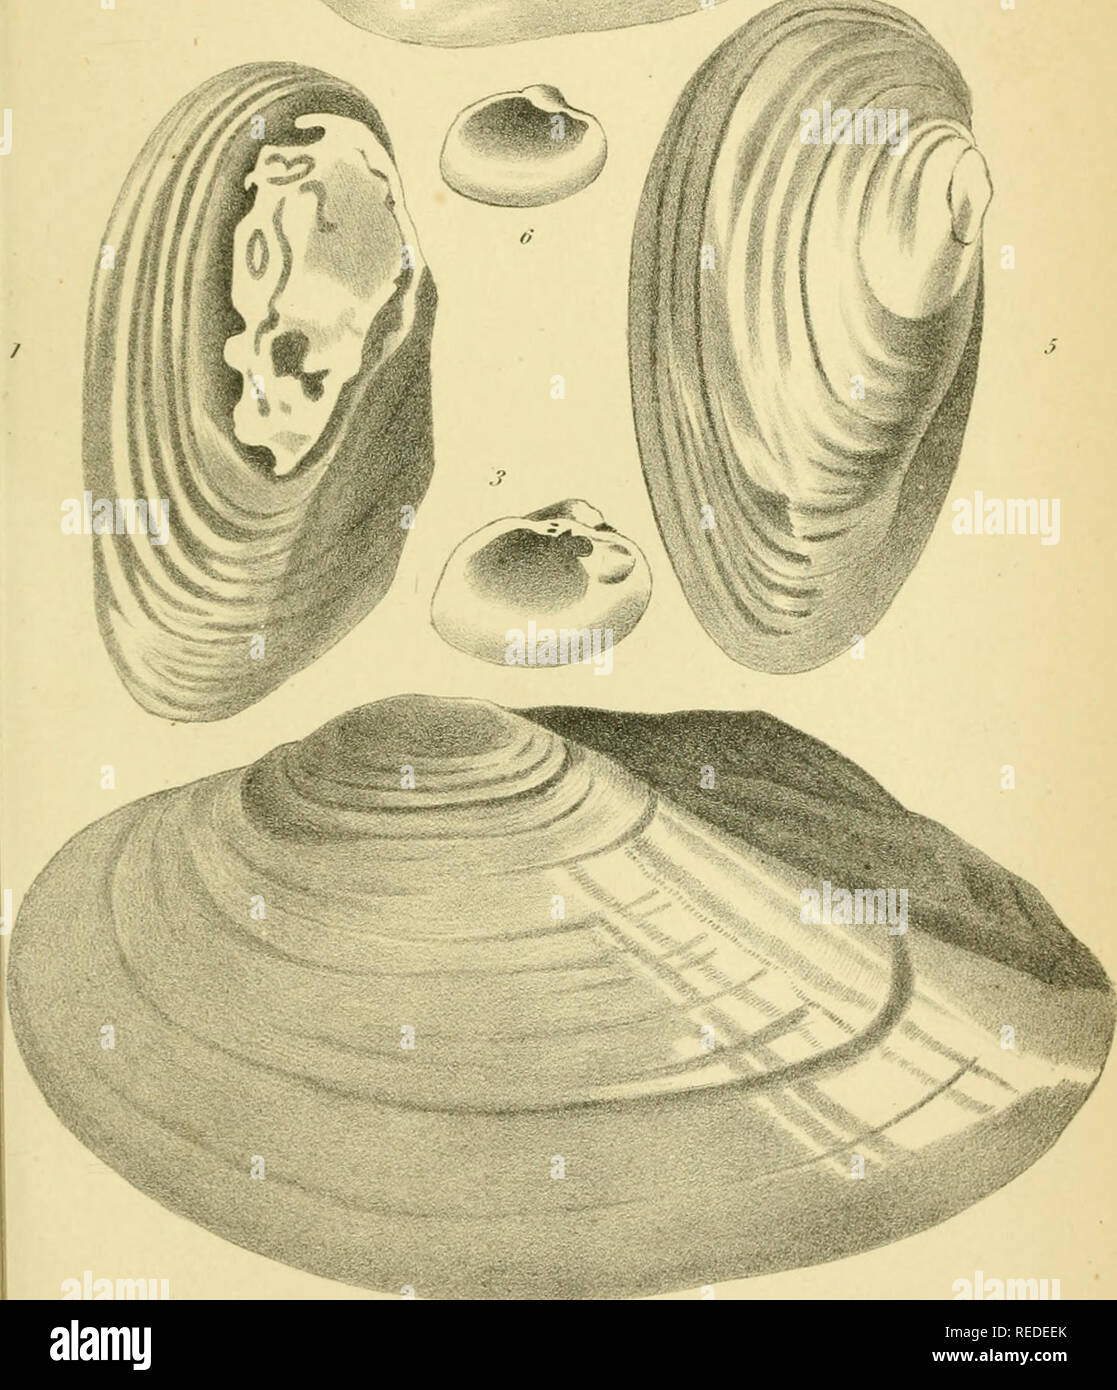 . The complete writings of Thomas Say, on the conchology of the United States. Mollusks. 5^5^. j T.Snydil.]i'iclwlsony /^ru:r./'I..J. I'fu: simile. .. Please note that these images are extracted from scanned page images that may have been digitally enhanced for readability - coloration and appearance of these illustrations may not perfectly resemble the original work.. Say, Thomas, 1787-1834; Binney, W. G. (William Greene), 1833-1909. New York : H. Baillière - Stock Image